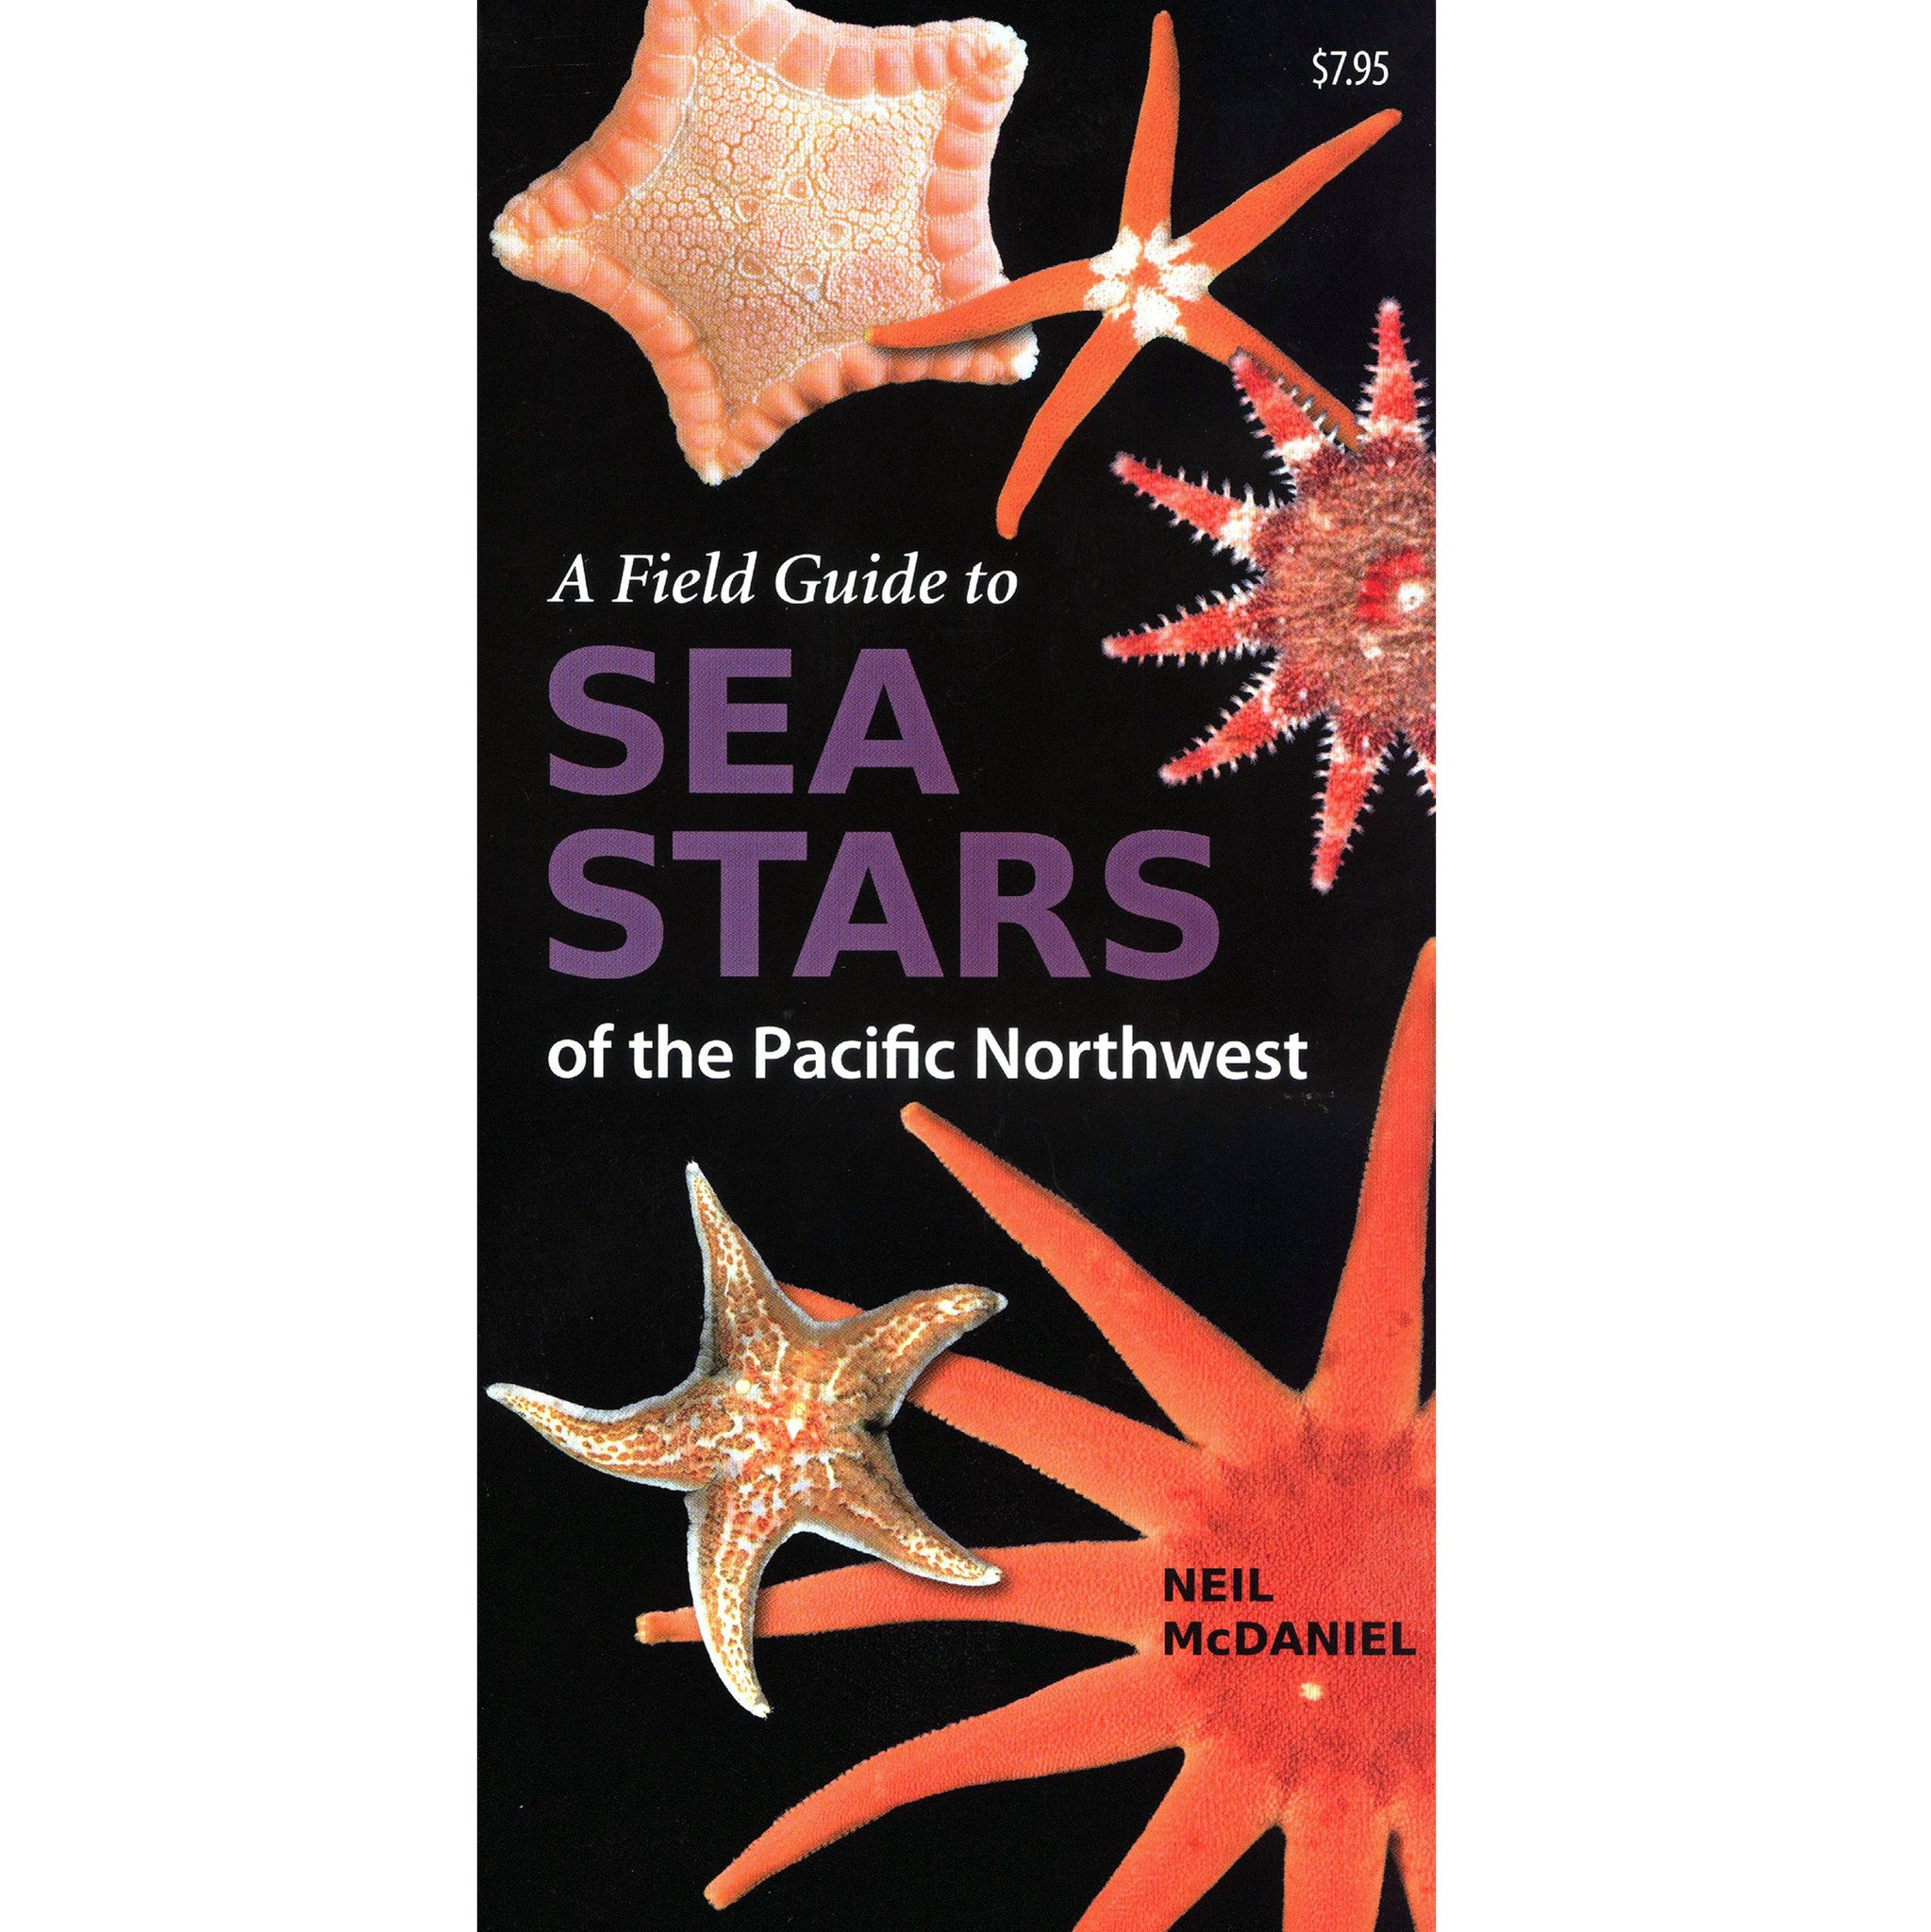 Field Guide to Sea Stars of PNW